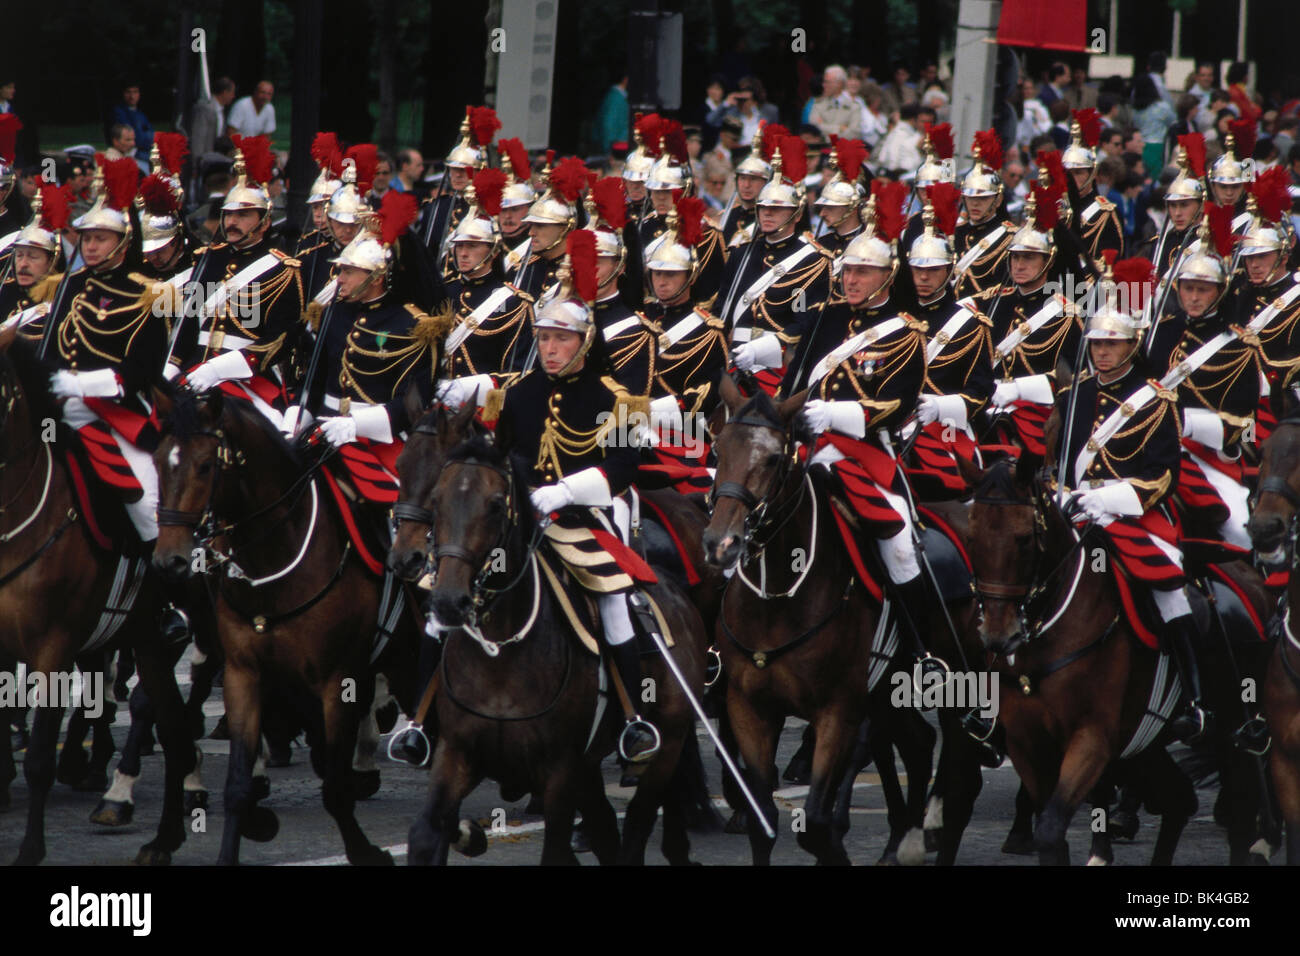 Republican Guards on the Champs Elysees during Bastille Day, Paris Stock Photo